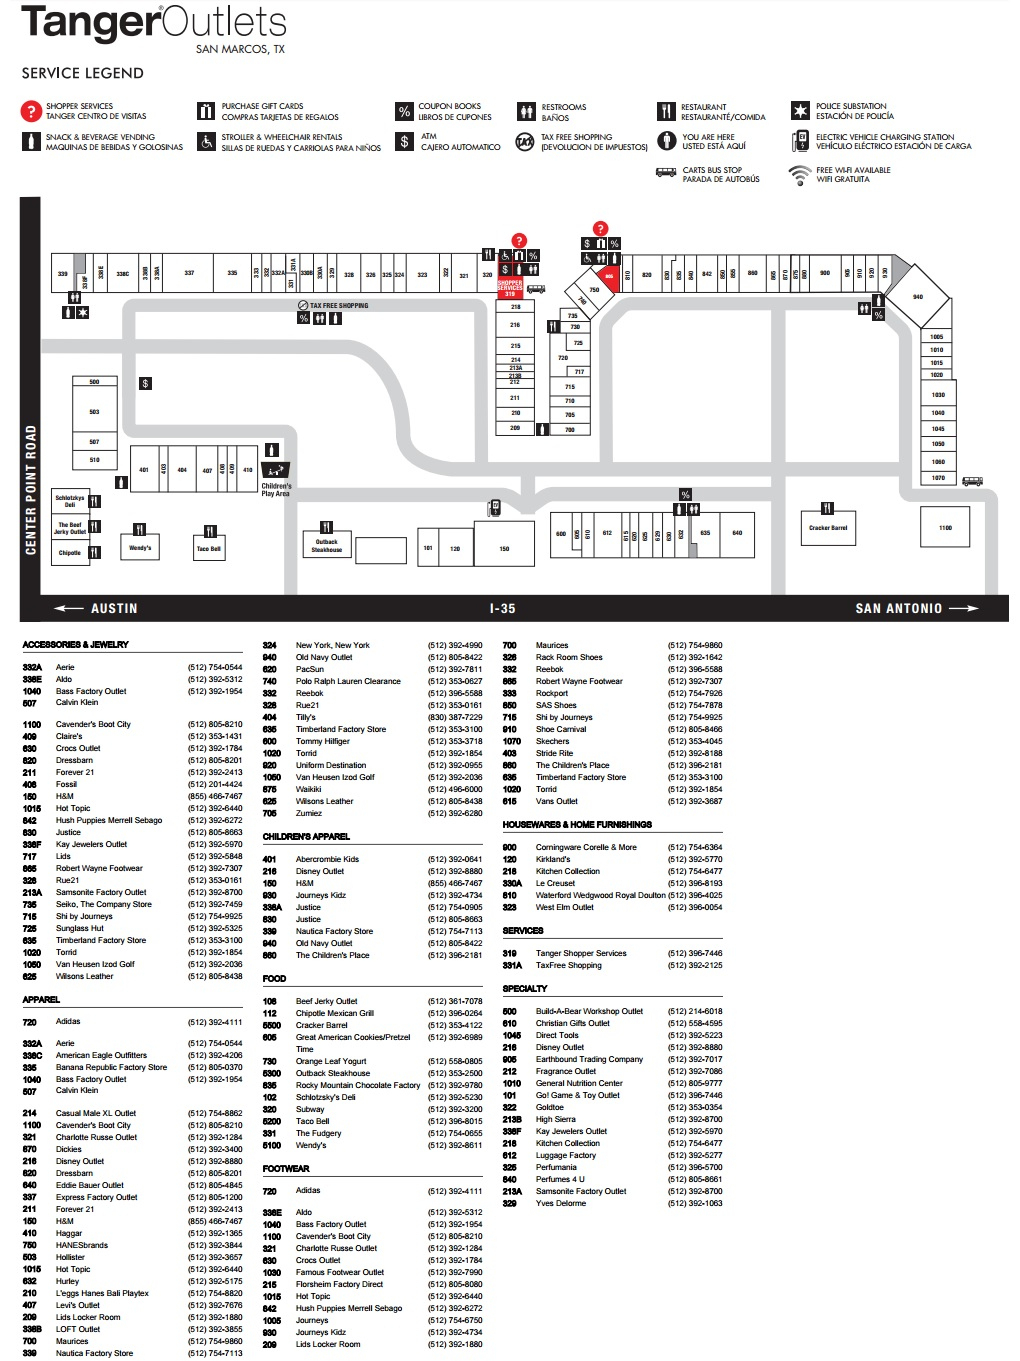 Tanger Outlets San Marcos (103 Stores) - Outlet Shopping In San - Tanger Outlets Texas City Stores Map